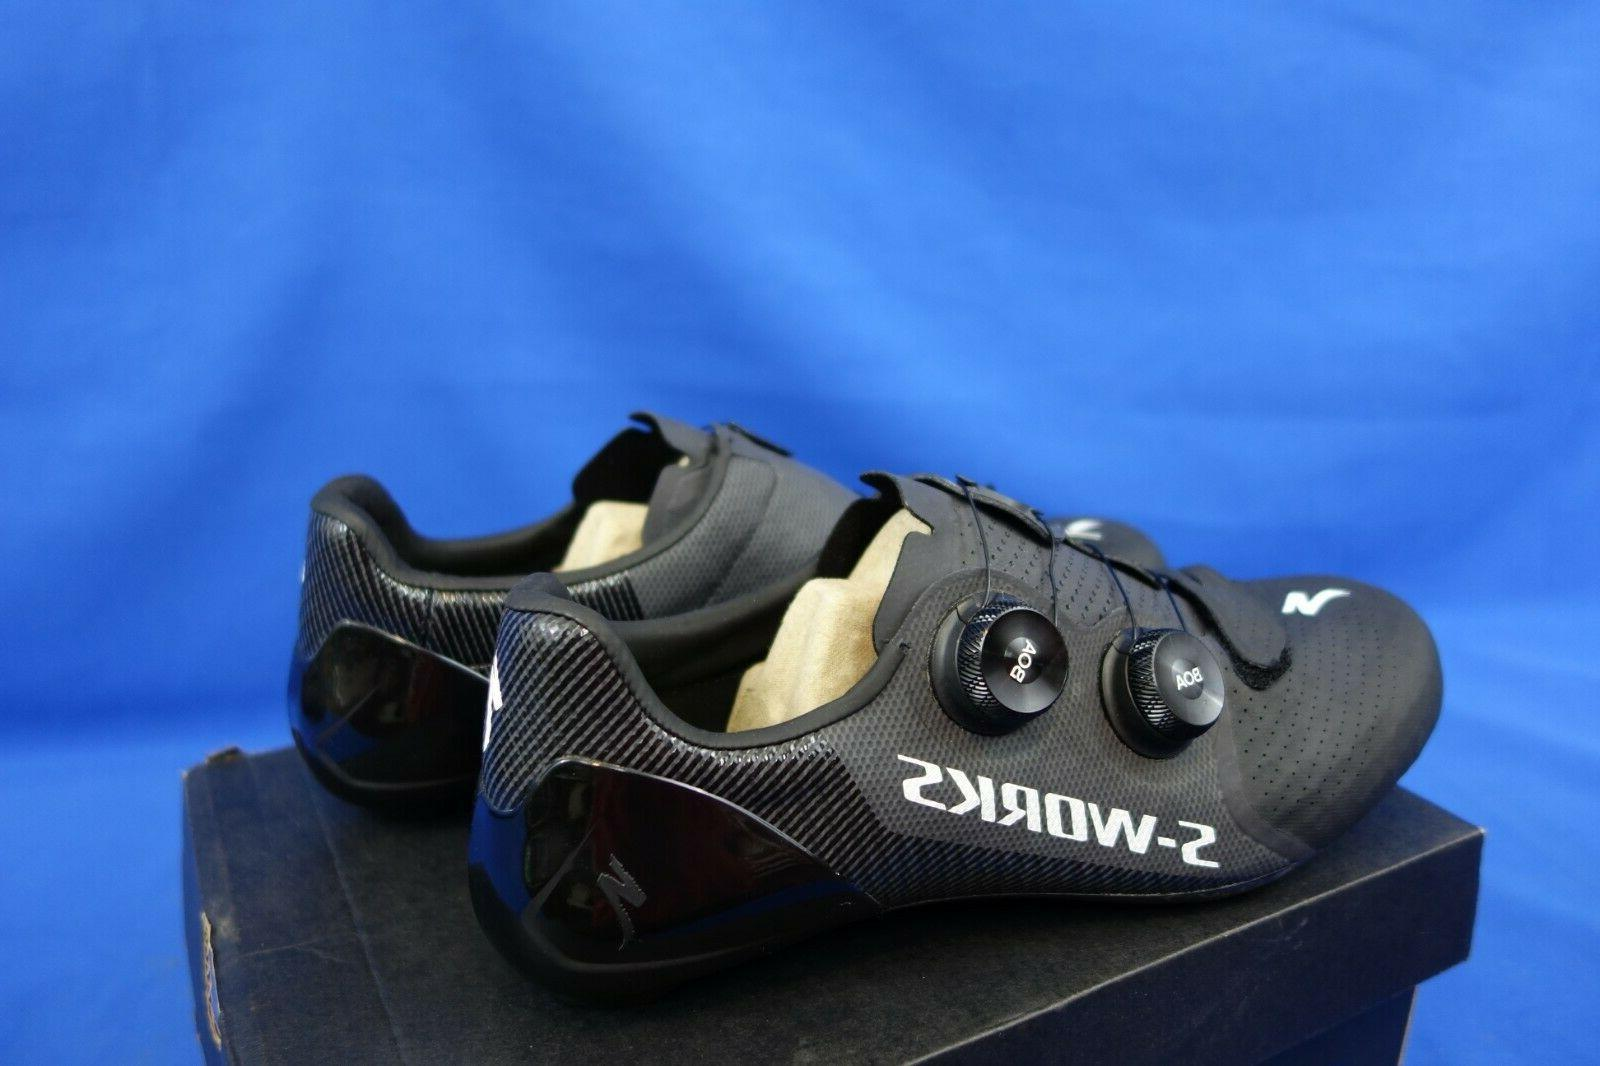 New S-Works 7 RD Cycling Sizes*